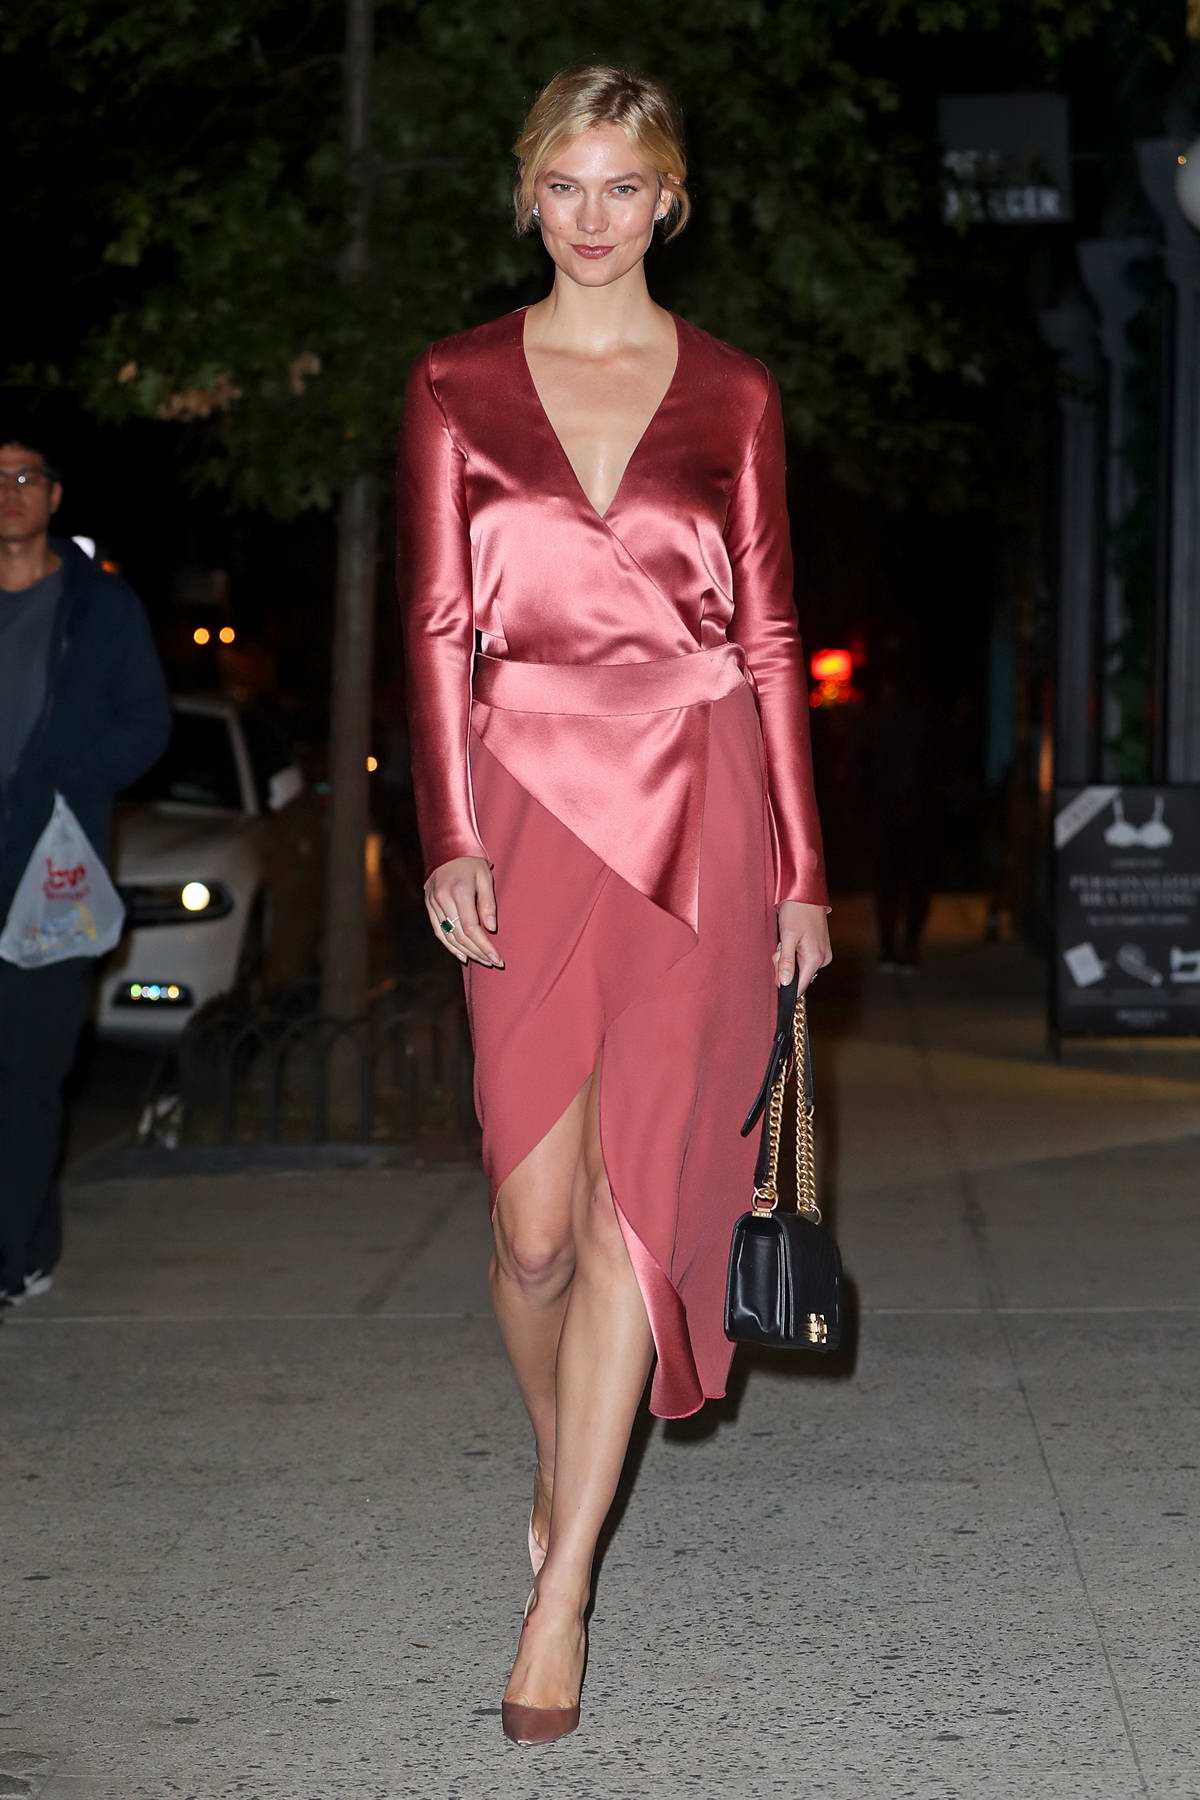 Karlie Kloss heads for a night out in a coral red satin dress in New York City